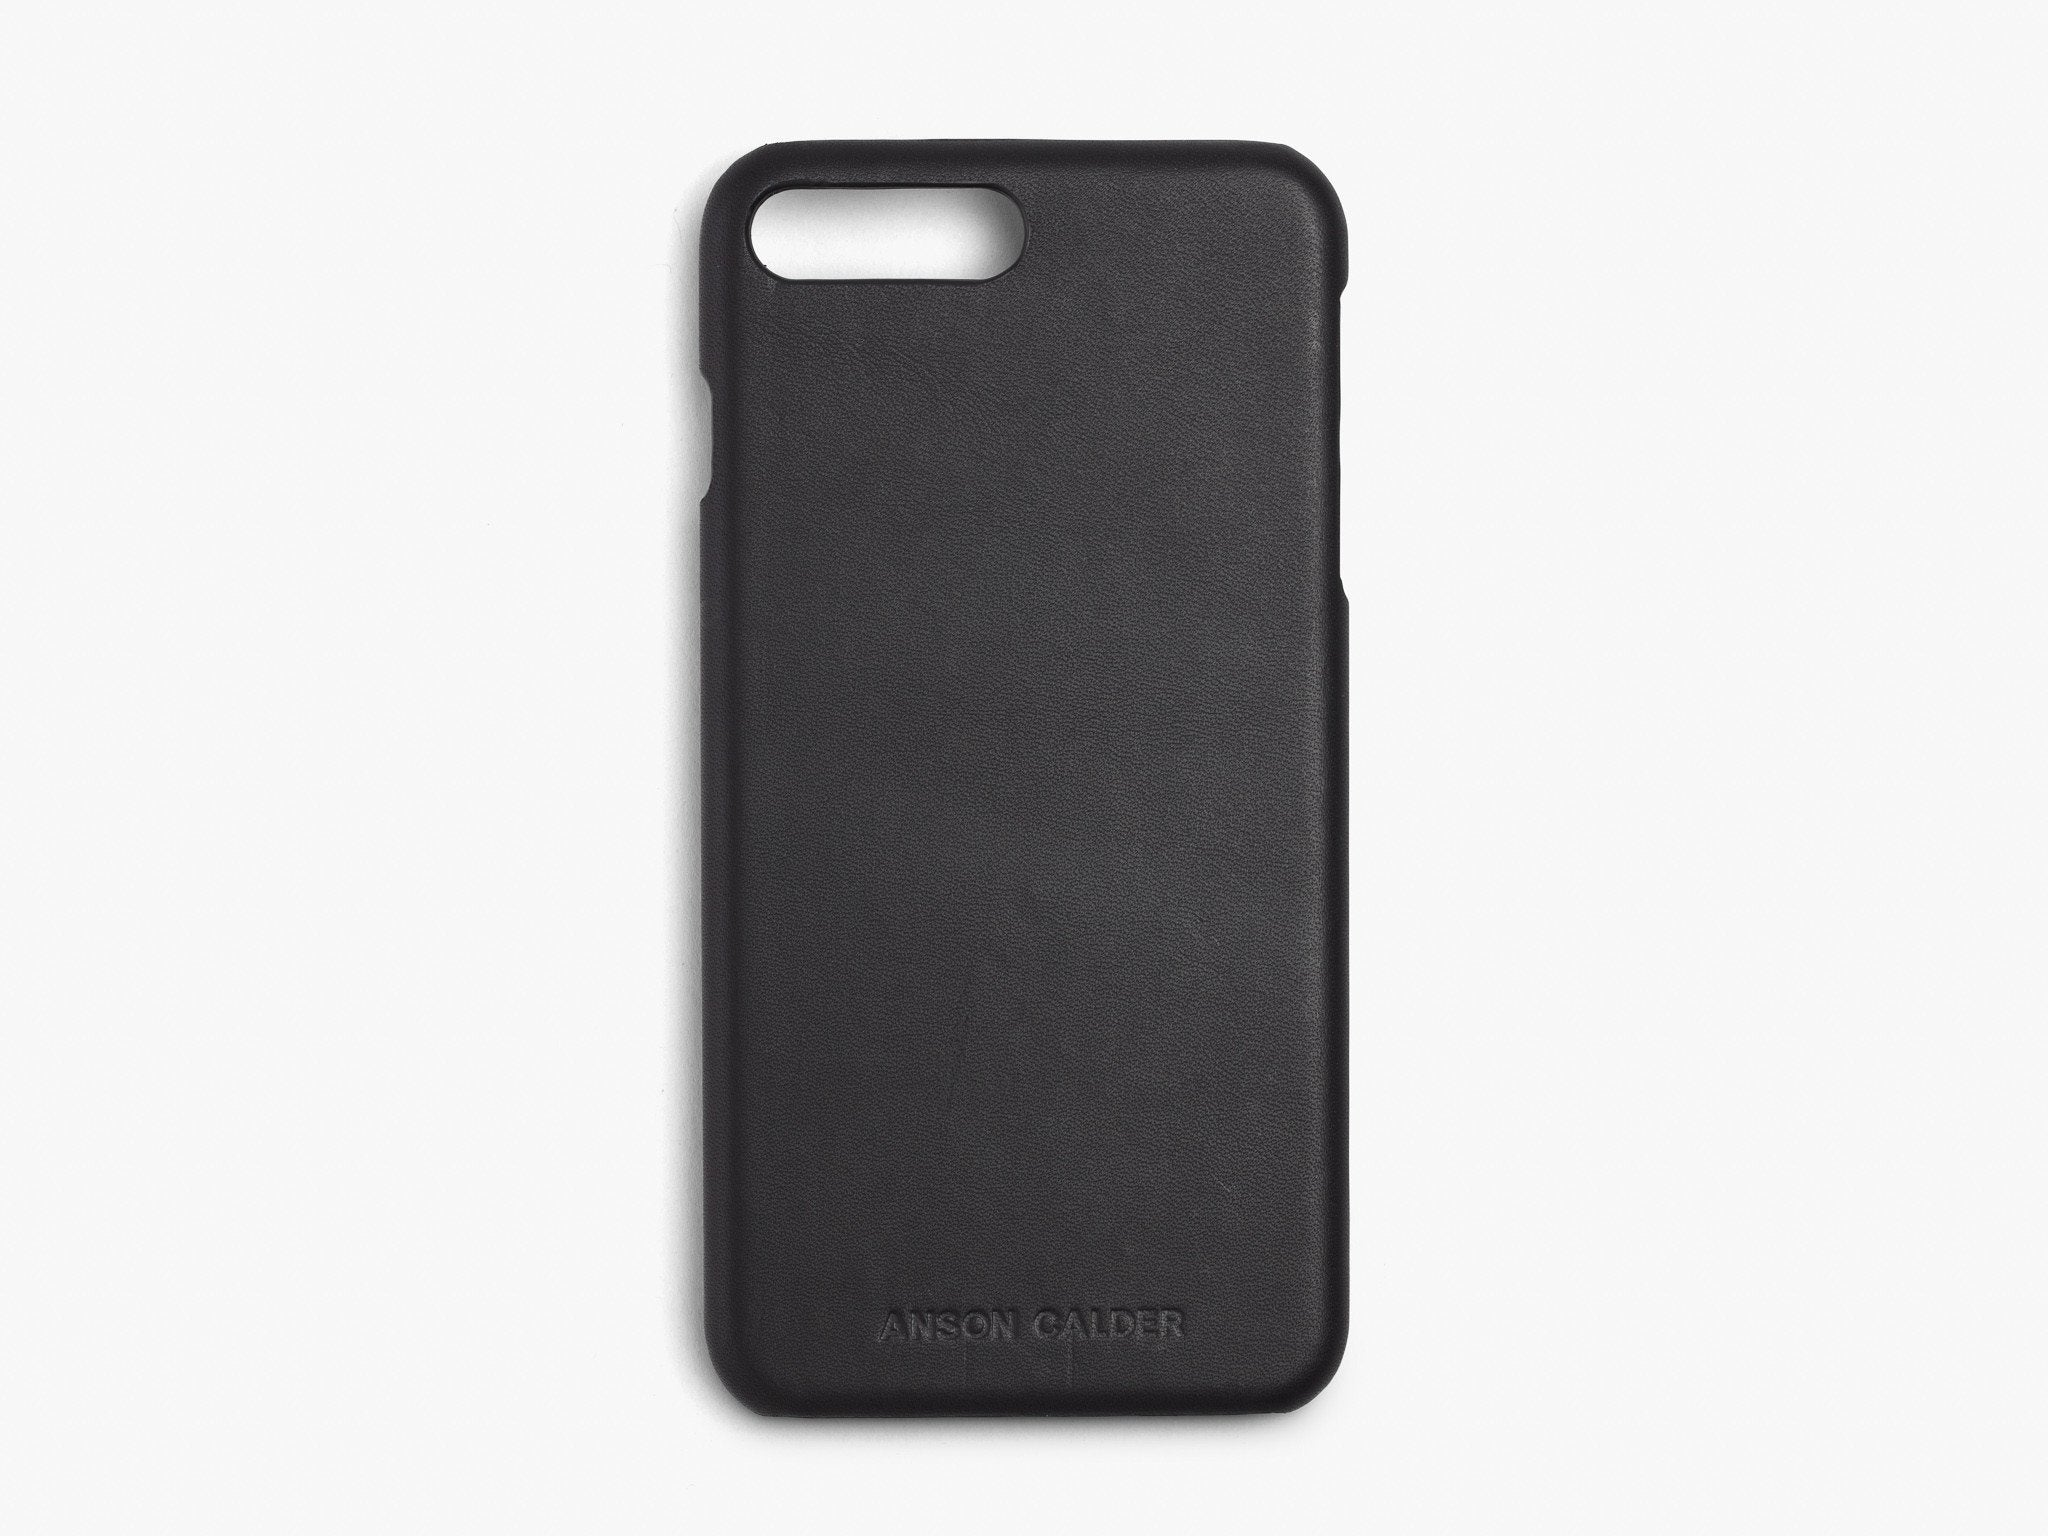 CALFSKIN iPHONE CASE CASES ANSON CALDER iPhone 8 Plus !iphone8plus  _Black